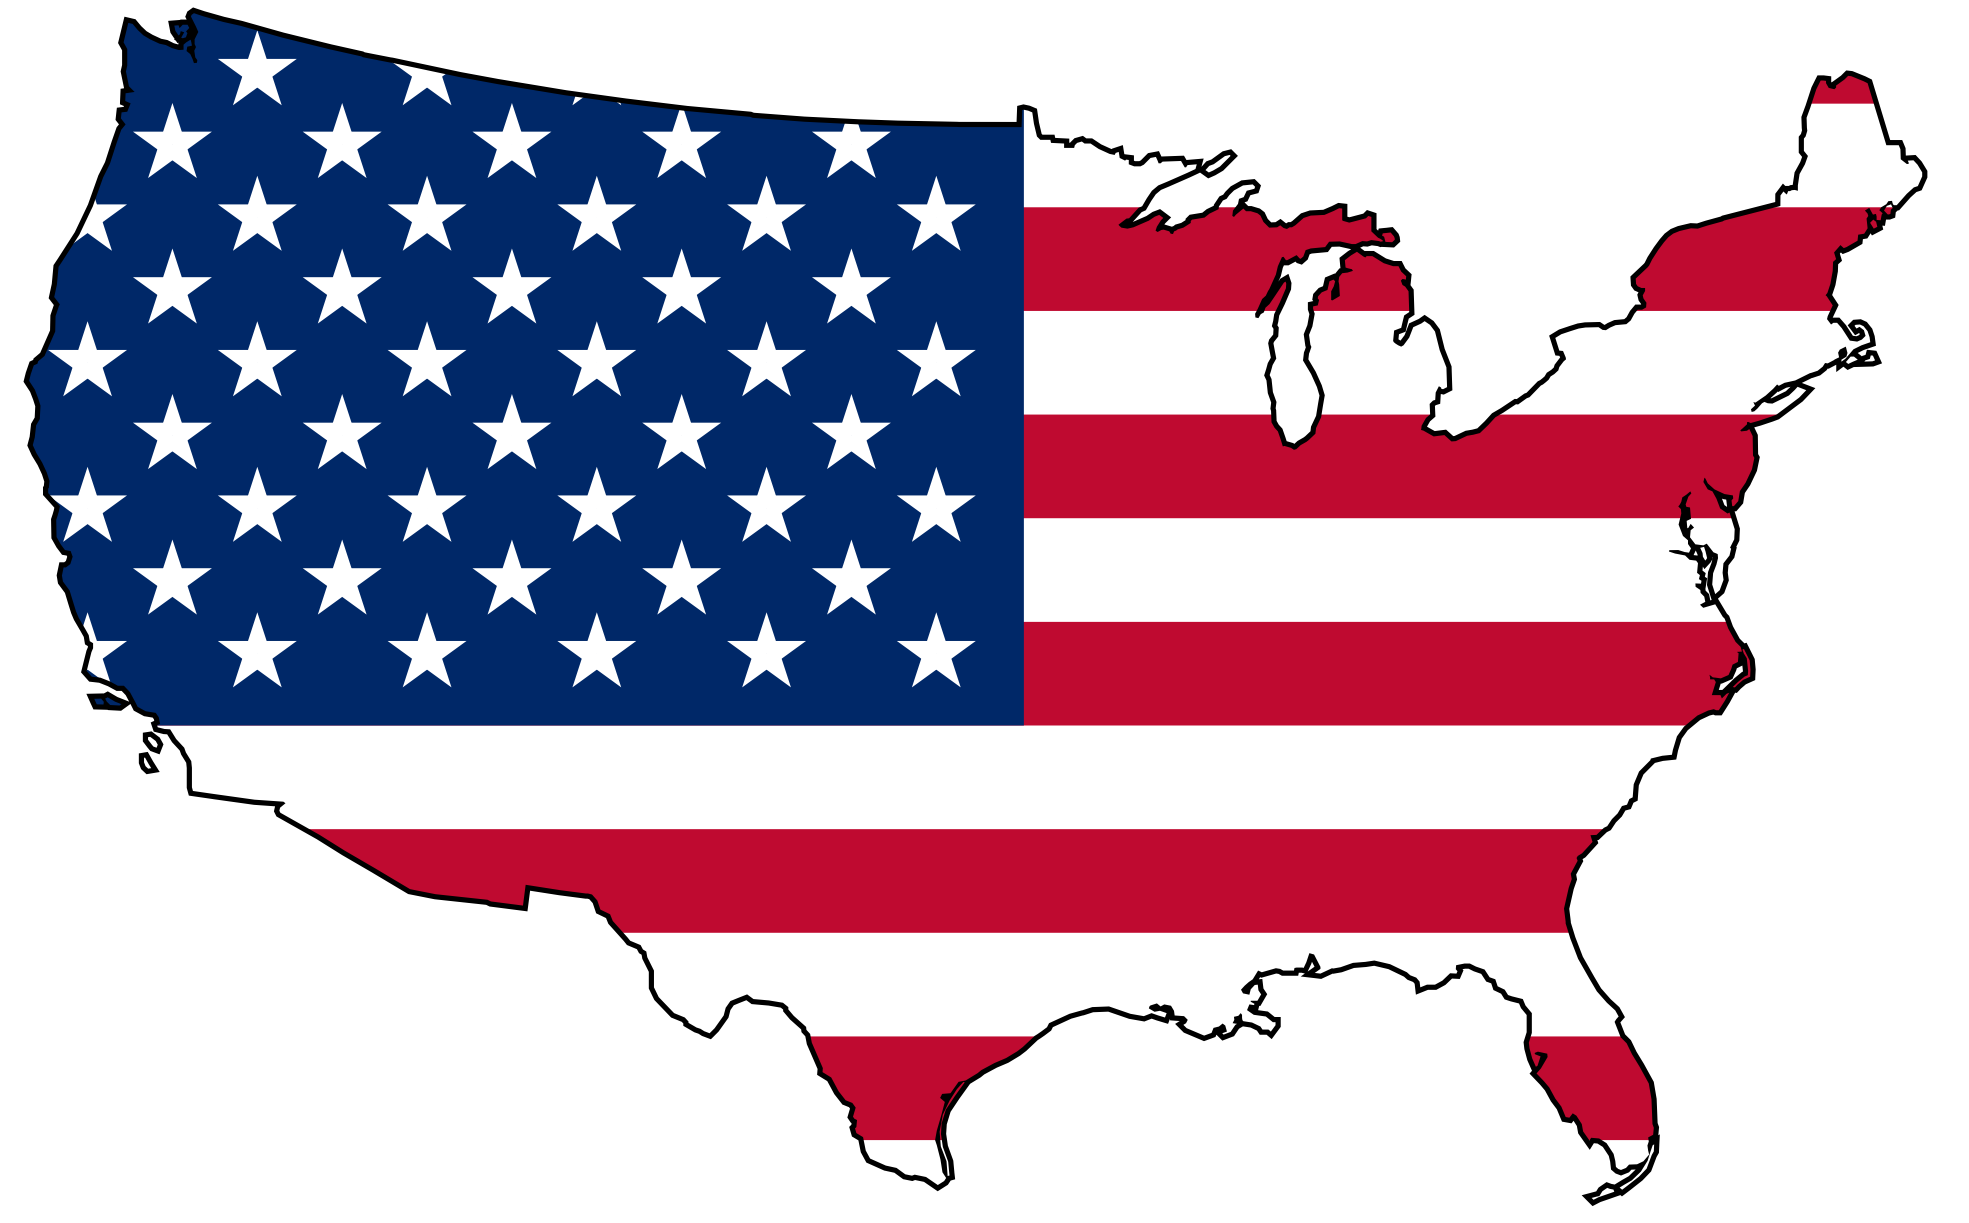 clip art map united states - photo #14